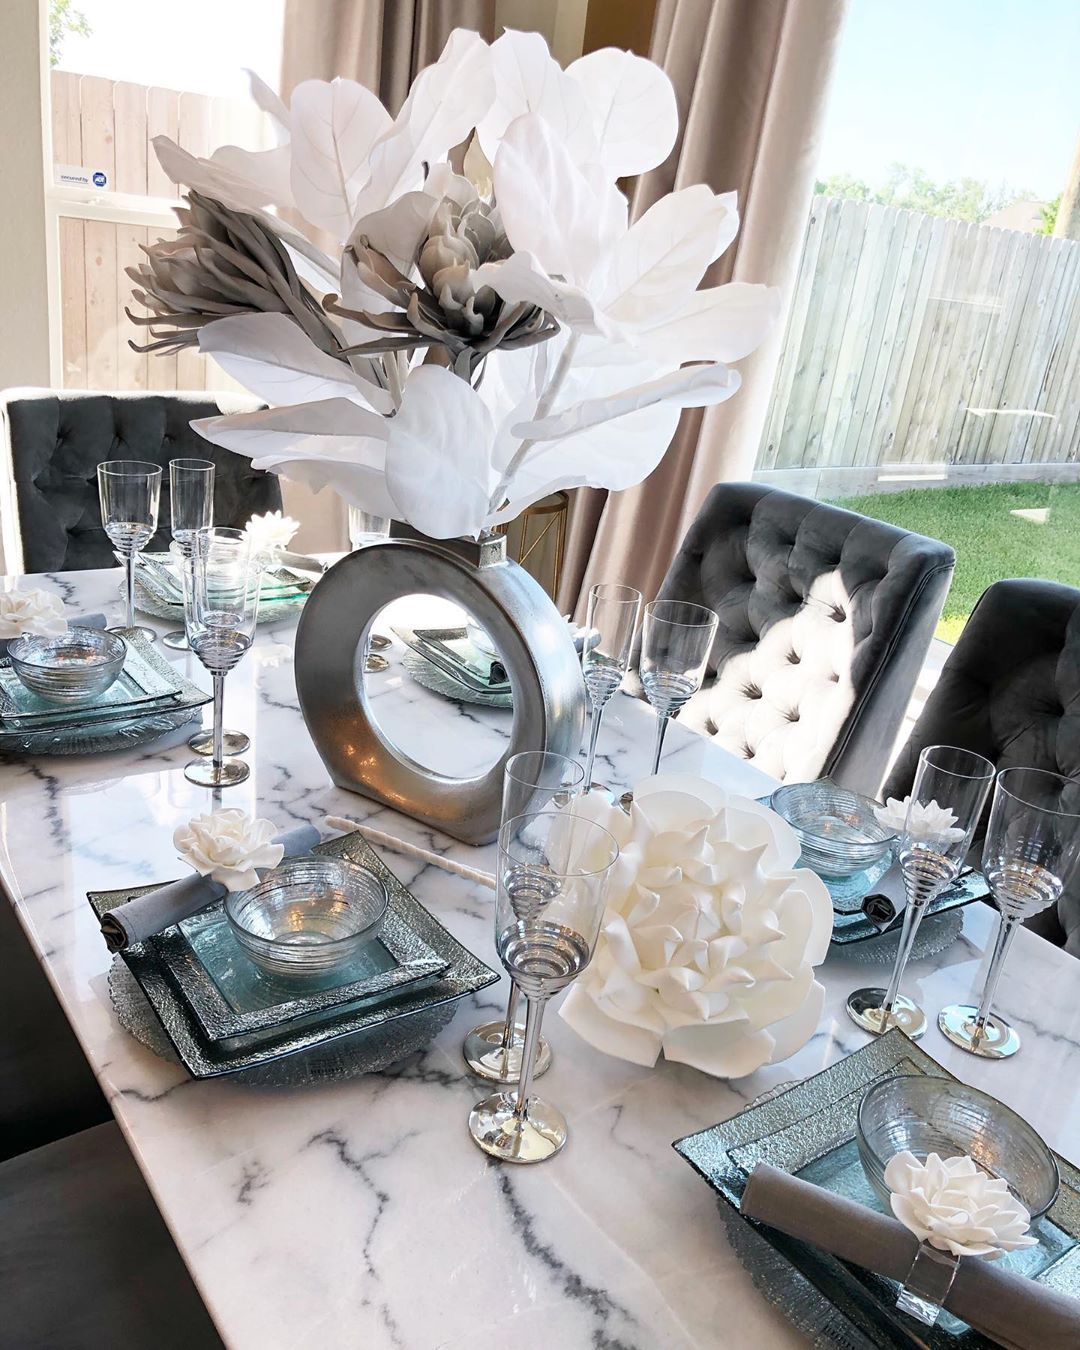 Tamara Bradshaw On Instagram Kitchen Tableware Setup Perfect Blend Of Th Dining Room Table Decor Dining Room Table Centerpieces Marble Tables Design